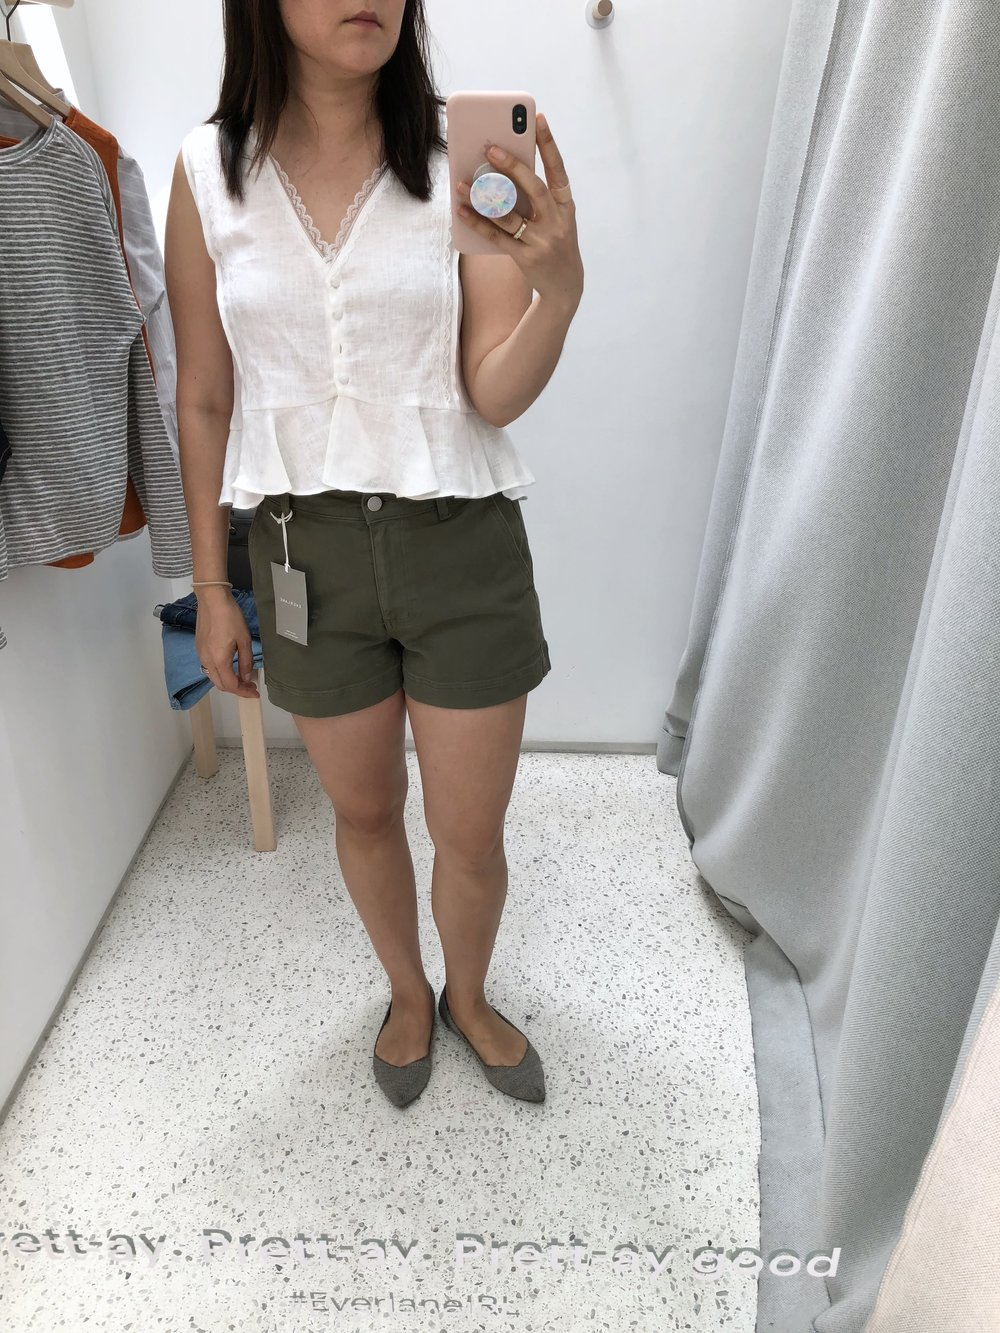 Everlane Review high rise cotton twill short